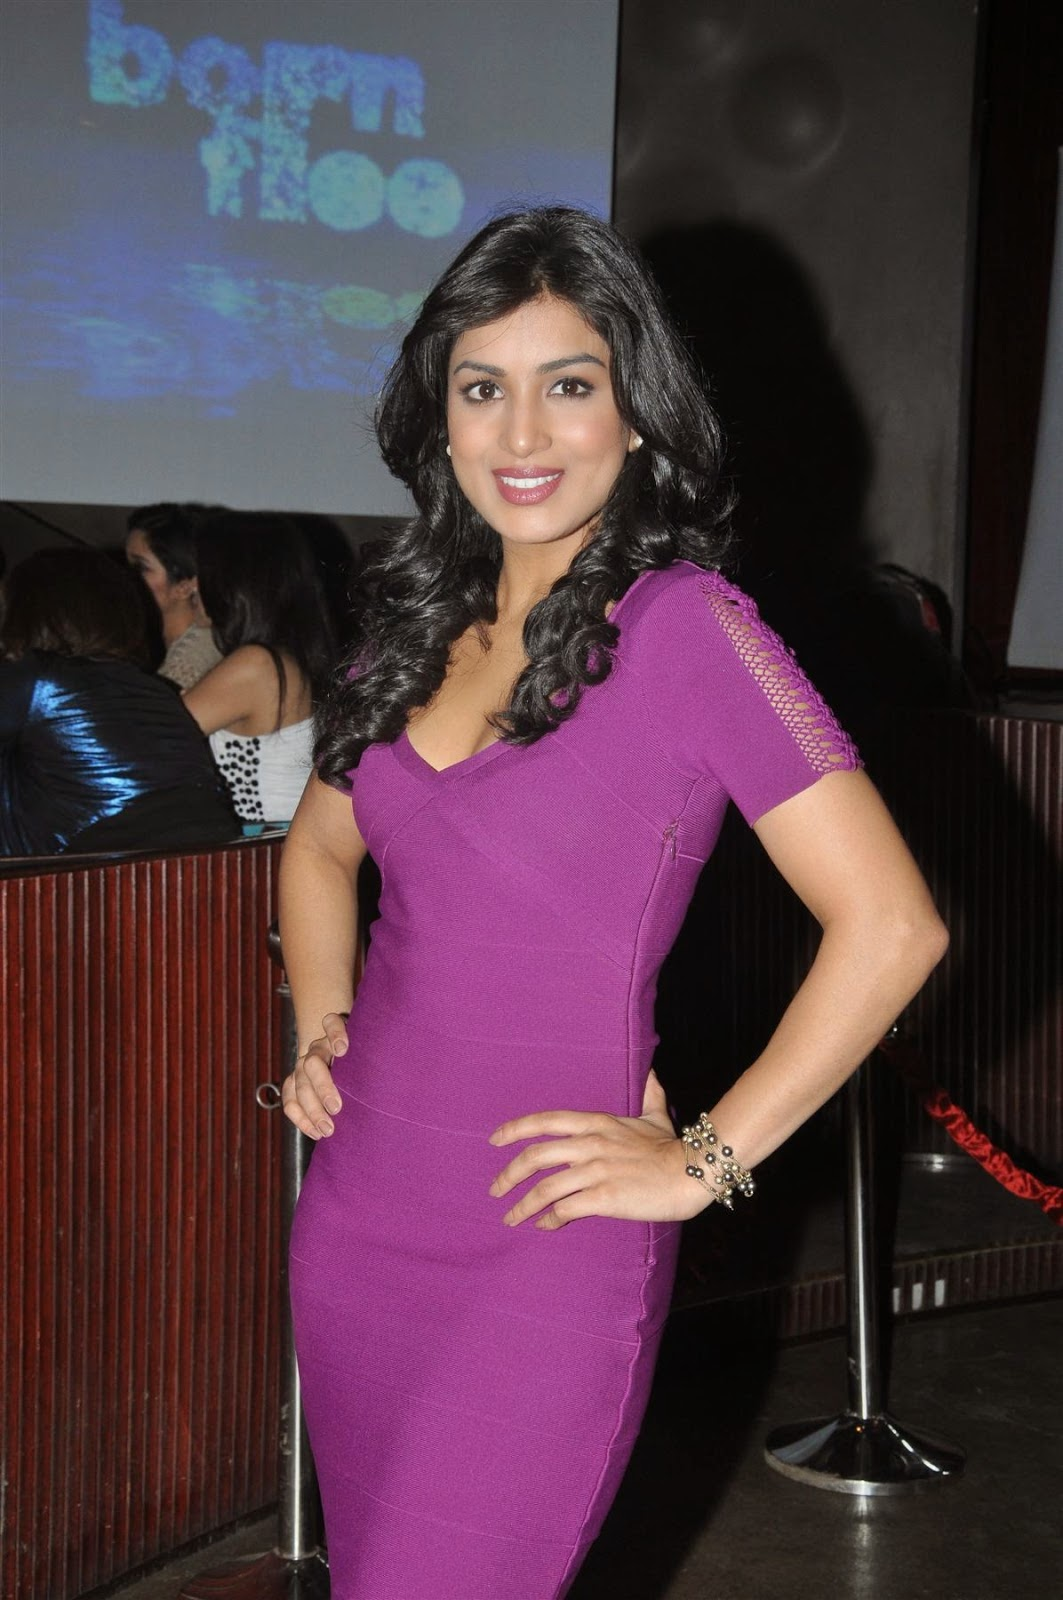 P, Pallavi sharda, Pallavi sharda, HD Actress Gallery, latest Actress HD Photo Gallery, Latest actress Stills, Bollywood Actress, Hindi Actress images, Hot Images, Indian Actress, Pallavi sharda New Hot Photo Stills